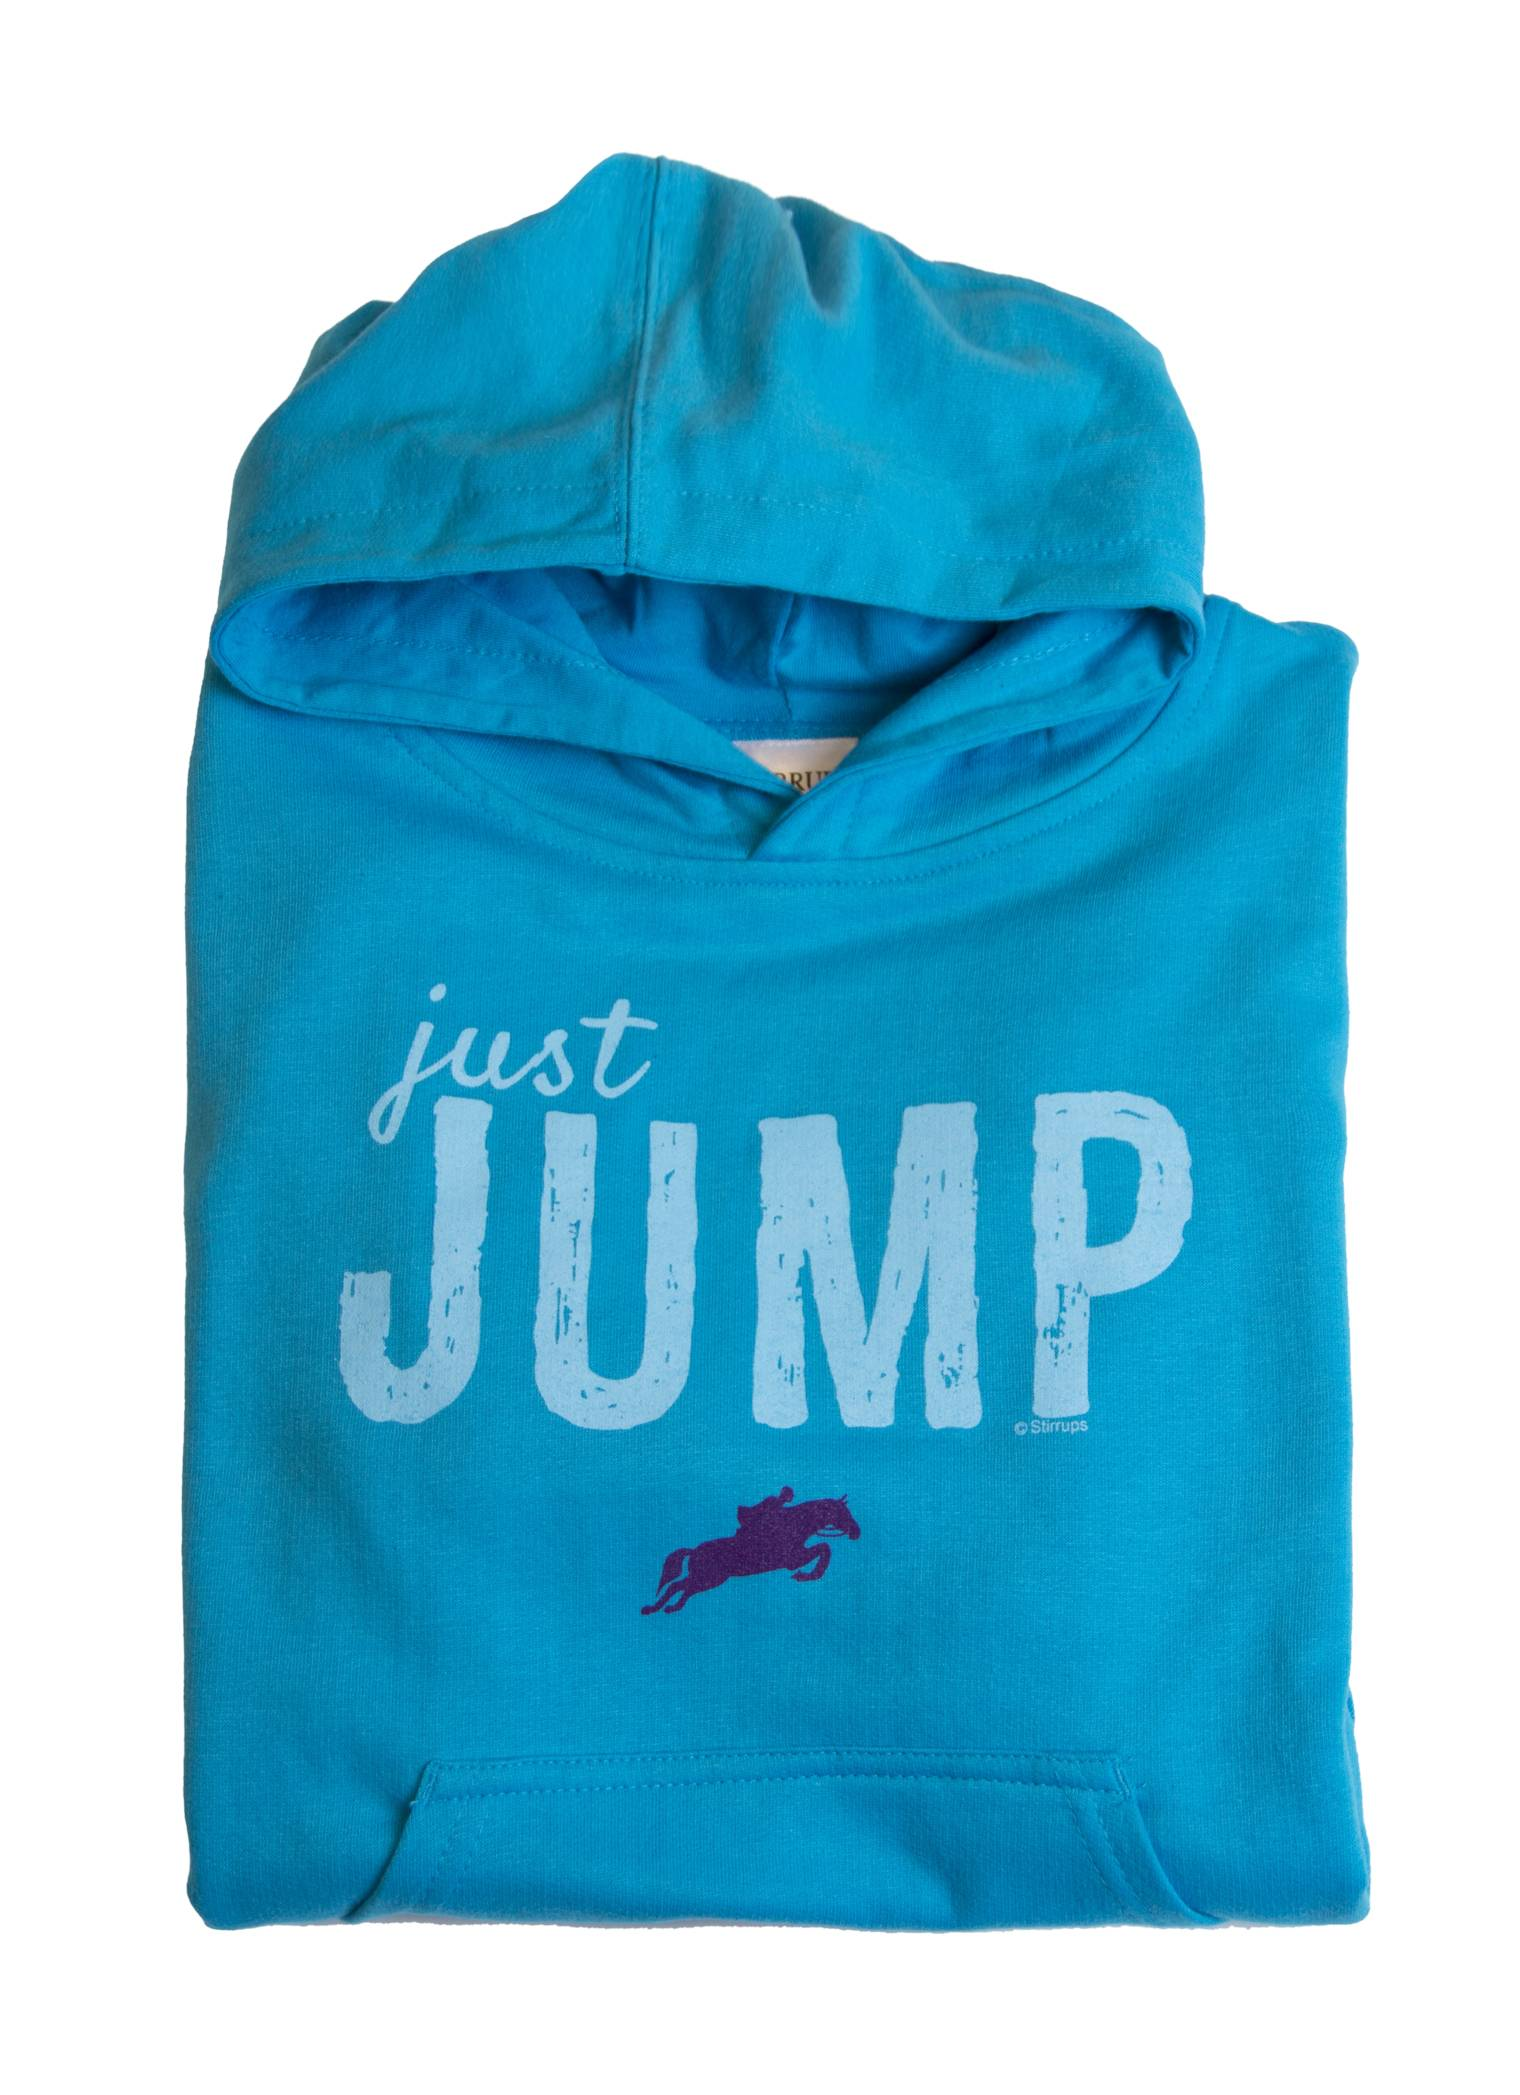 Stirrups Just Jump Fleece Hooded Sweatshirt - Kids